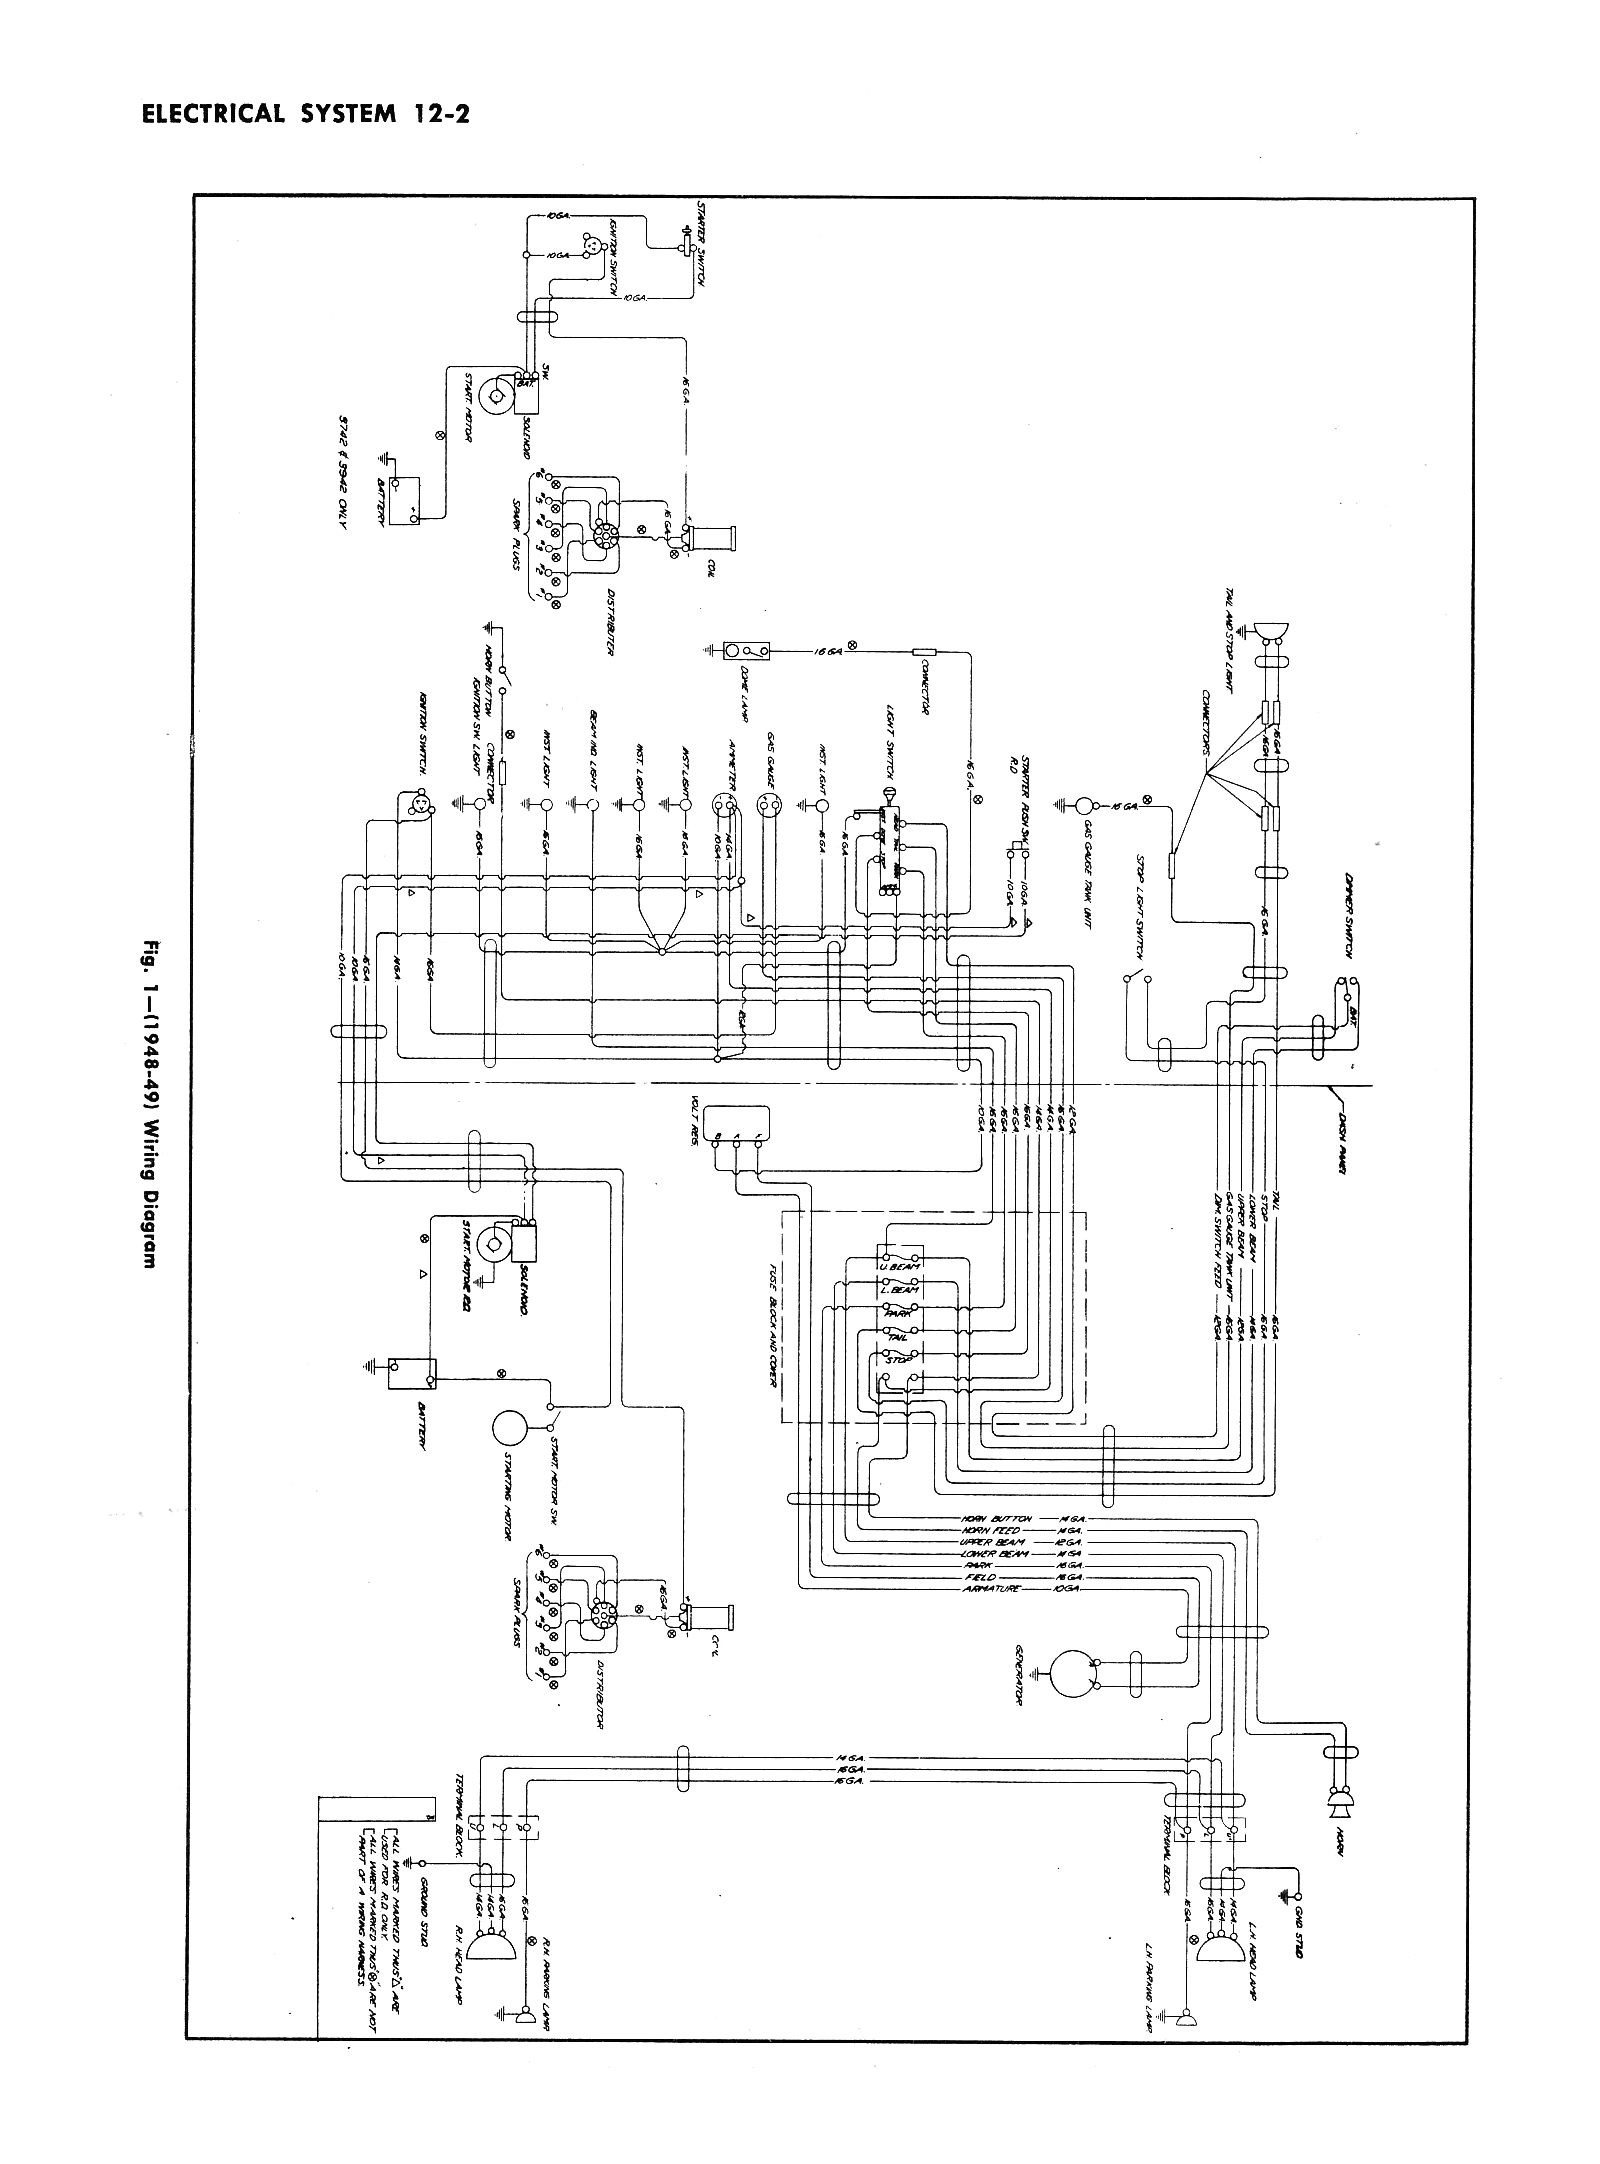 Wiring Diagram For 1986 Chevy Chassis Diagrams 1998 Chevrolet P30 Emc Vacuum